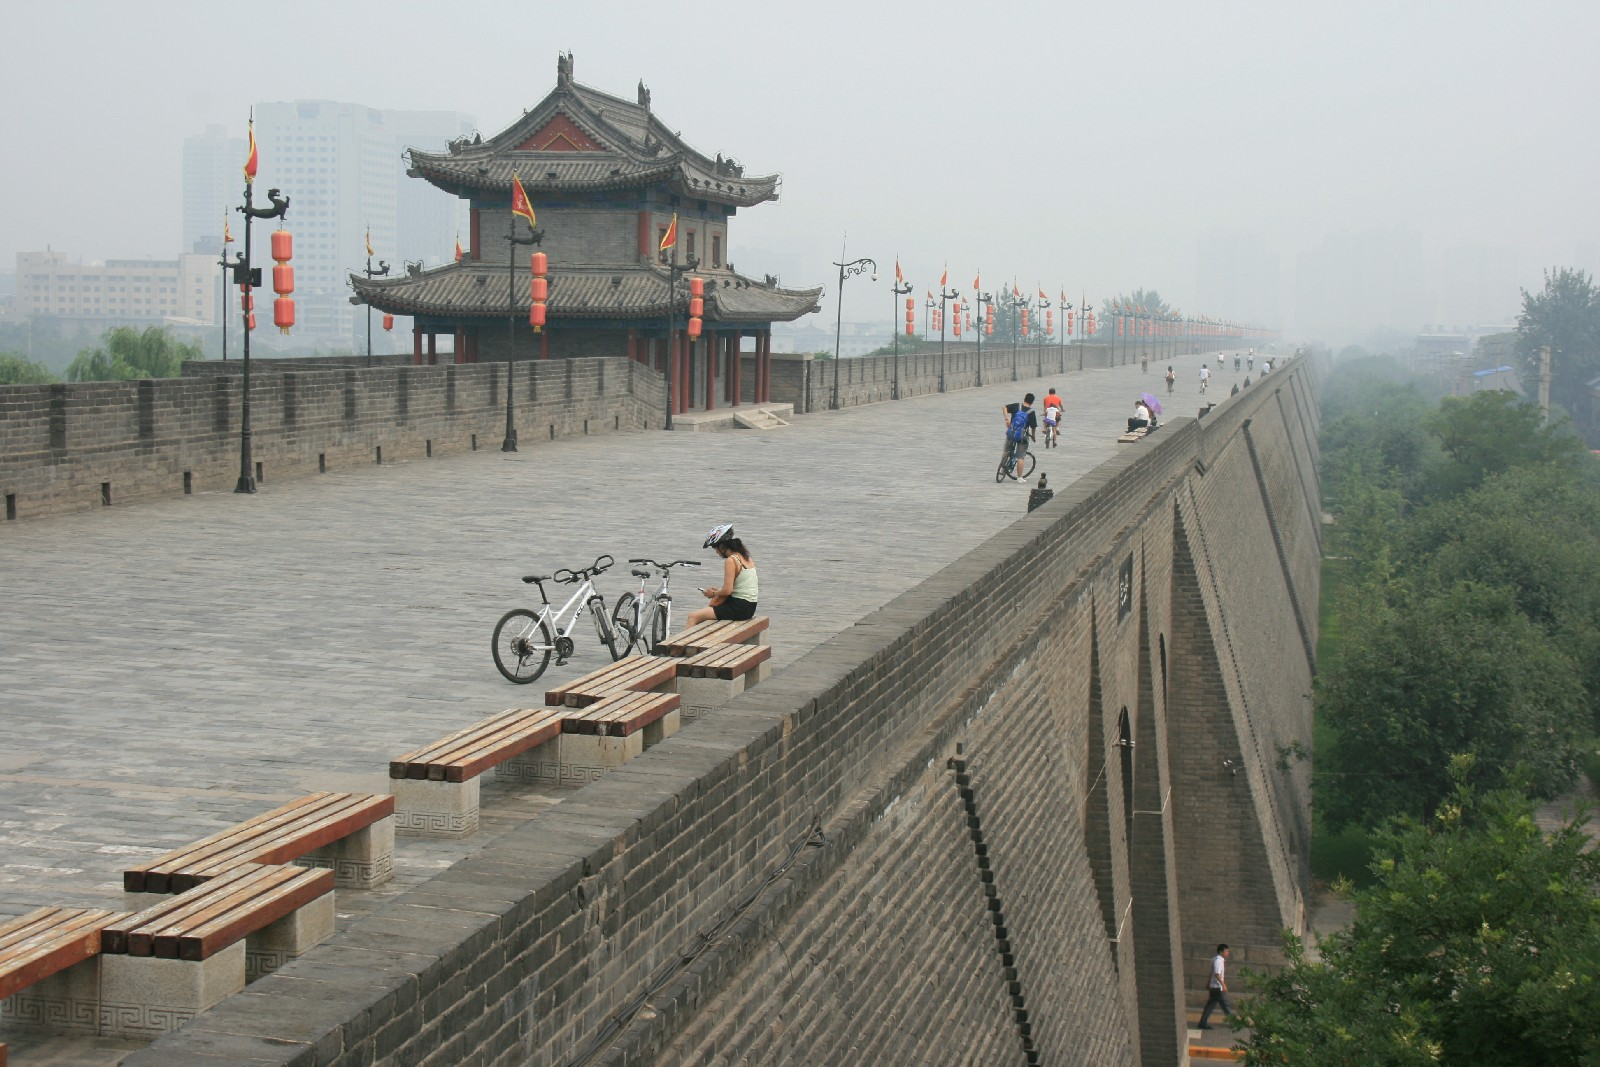 Pictures from China by otto leholt